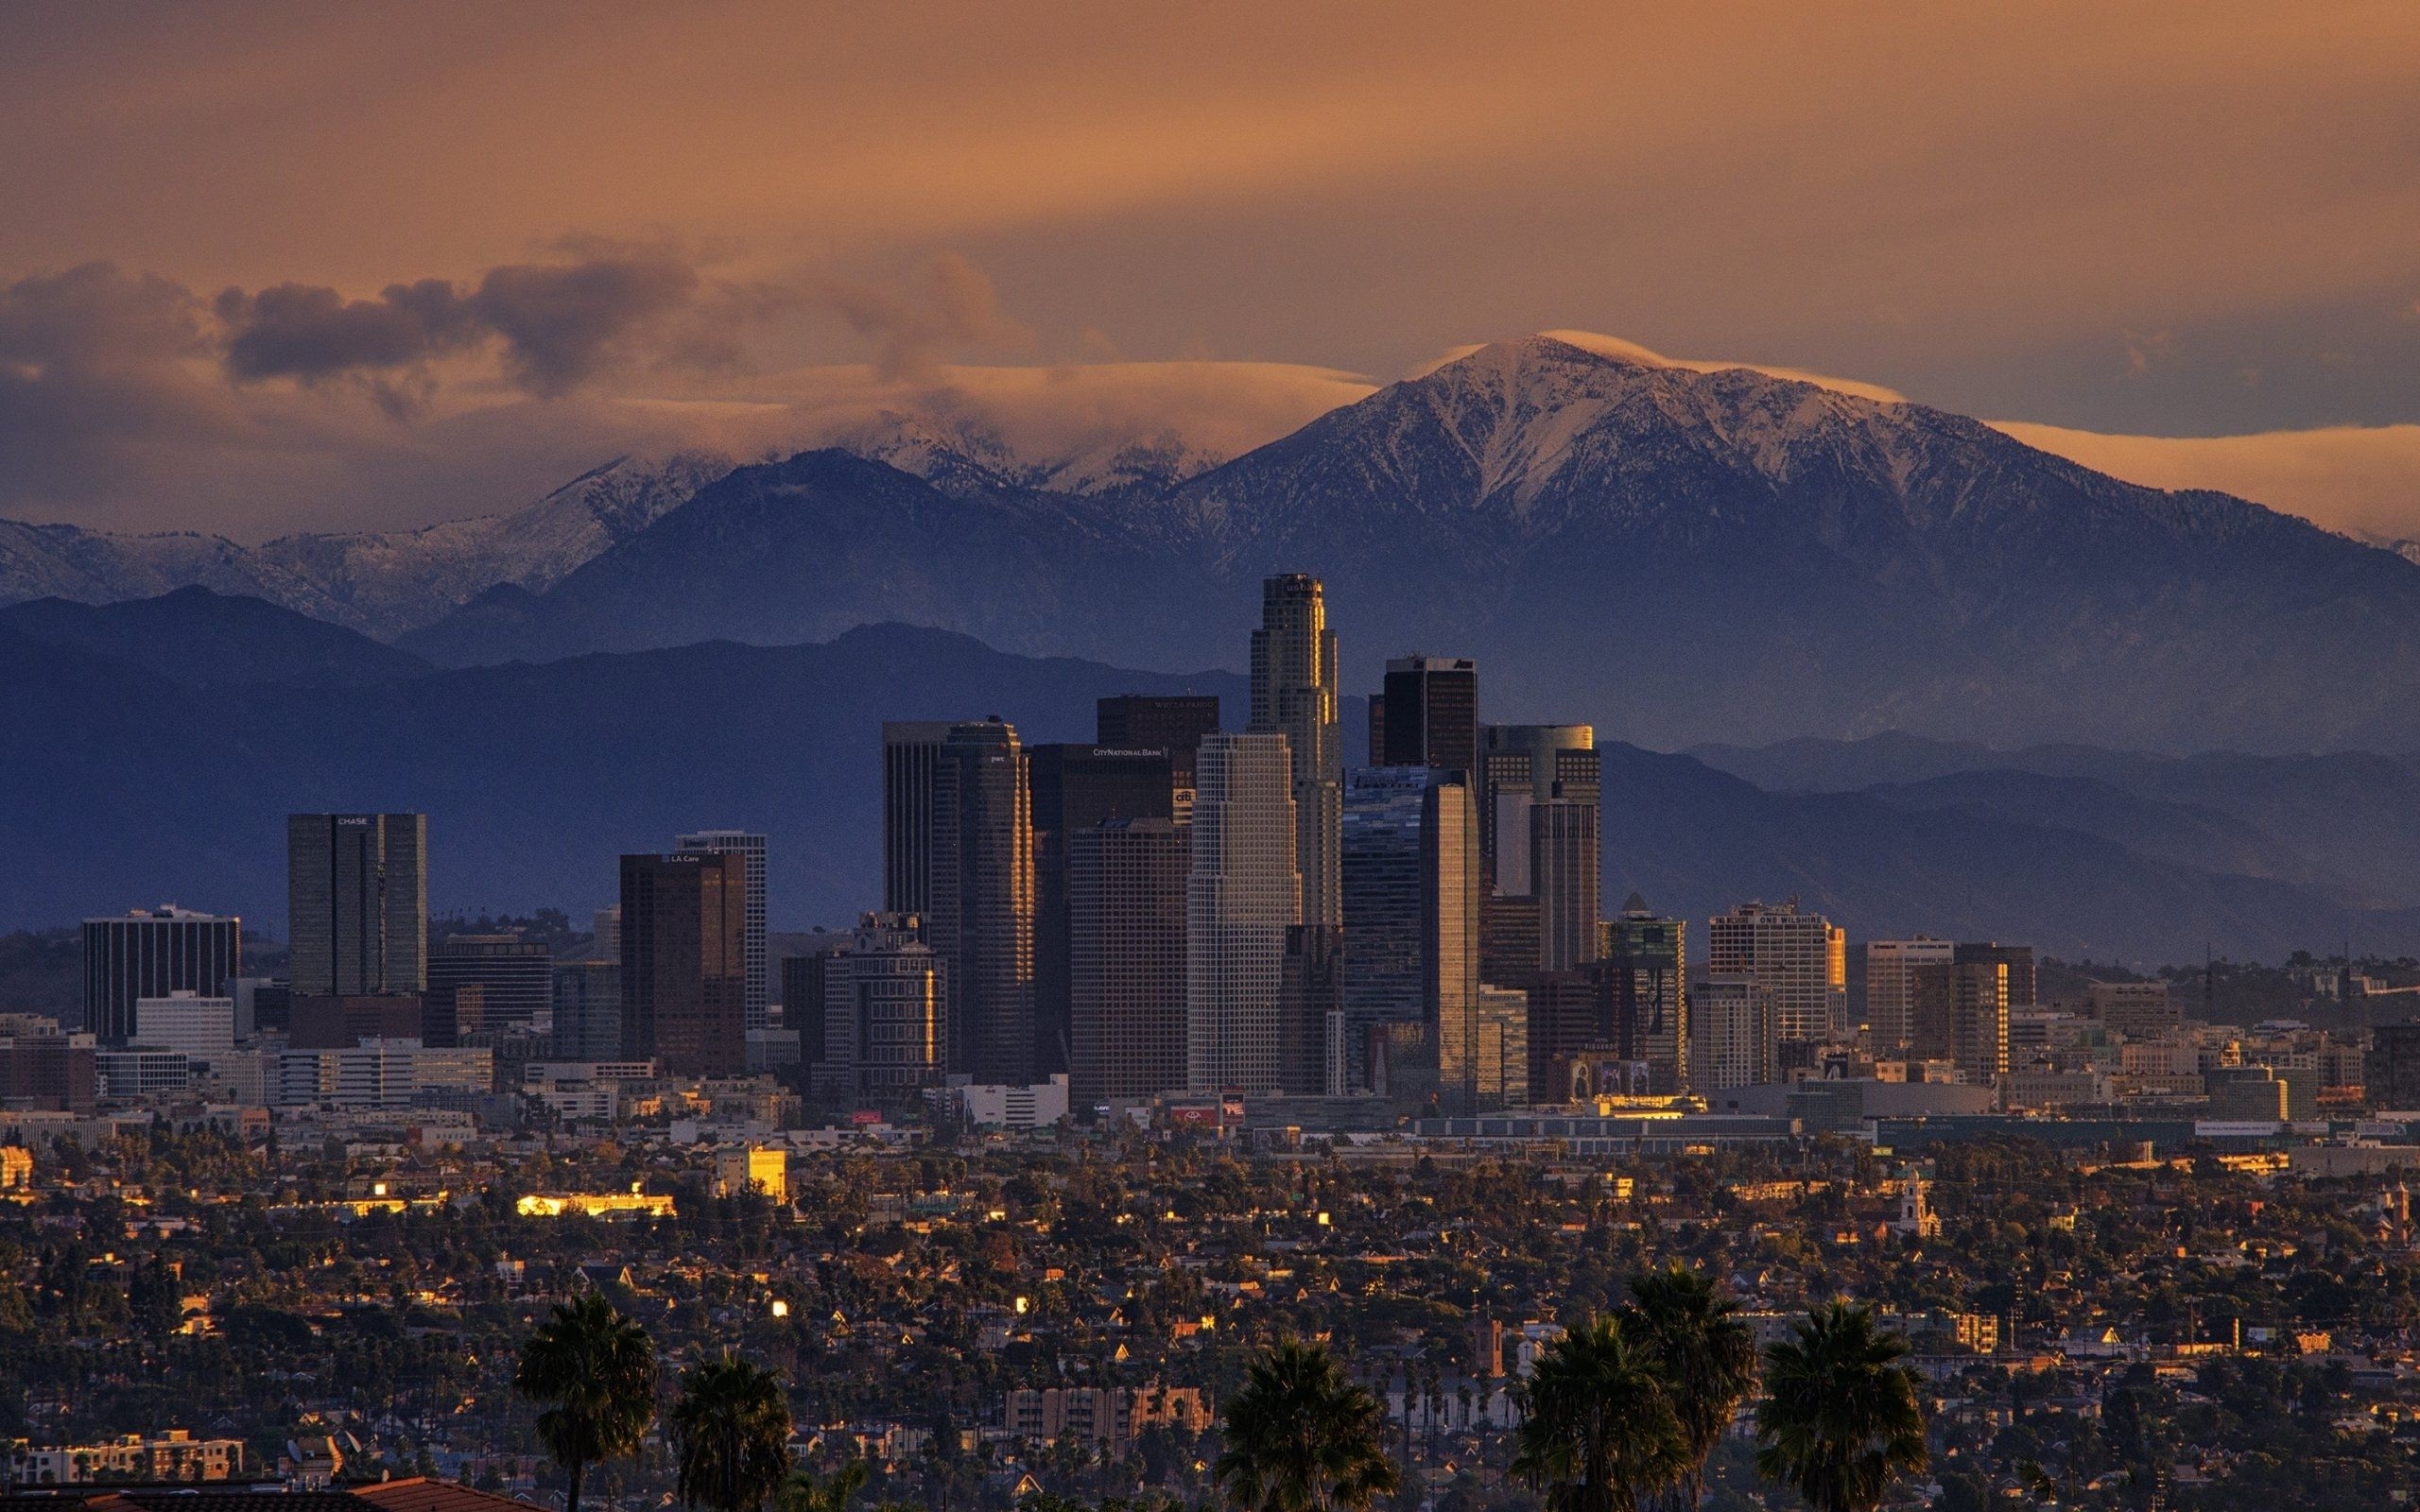 10 Best Los Angeles Hd Wallpapers Full Hd 1920 1080 For Pc Background Los Angeles Wallpaper Los Angeles City San Gabriel Mountains